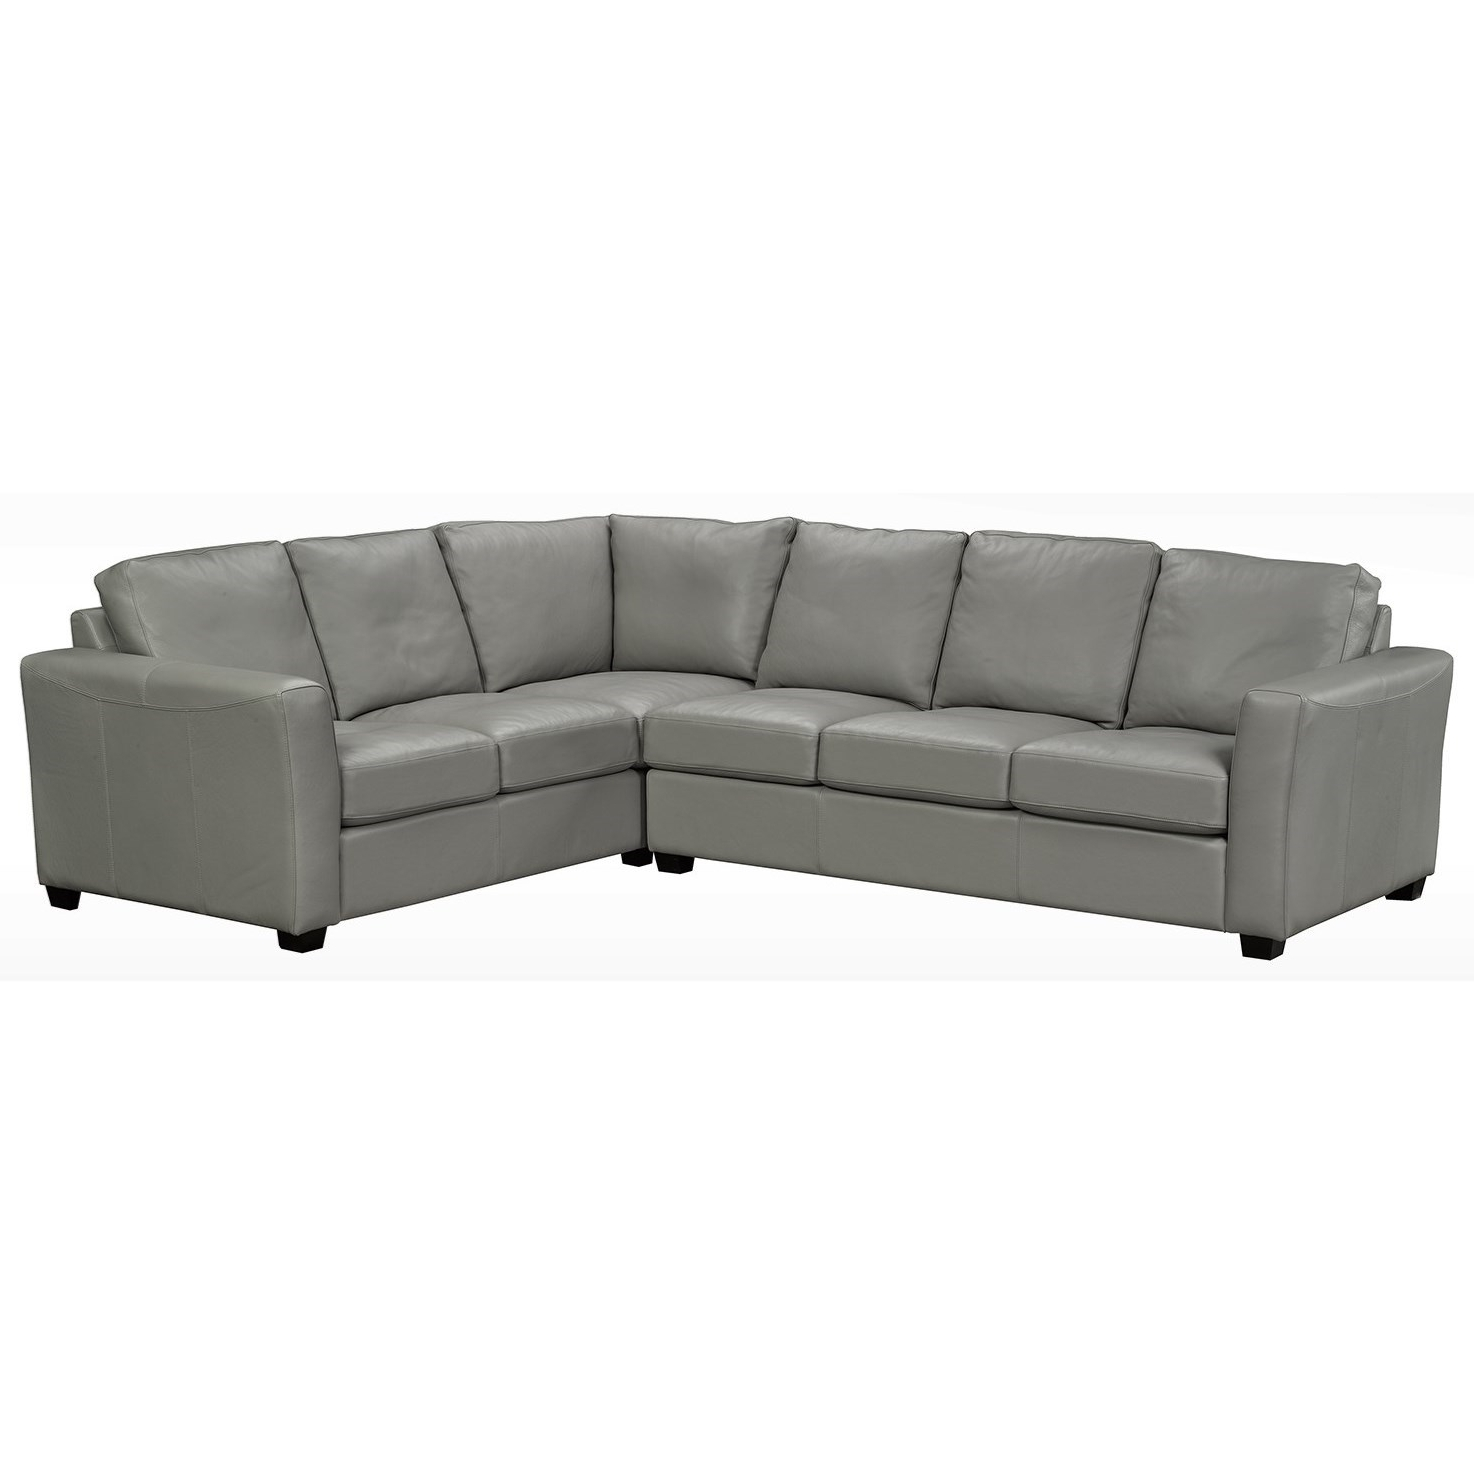 Sectional Sofas (View 13 of 20)